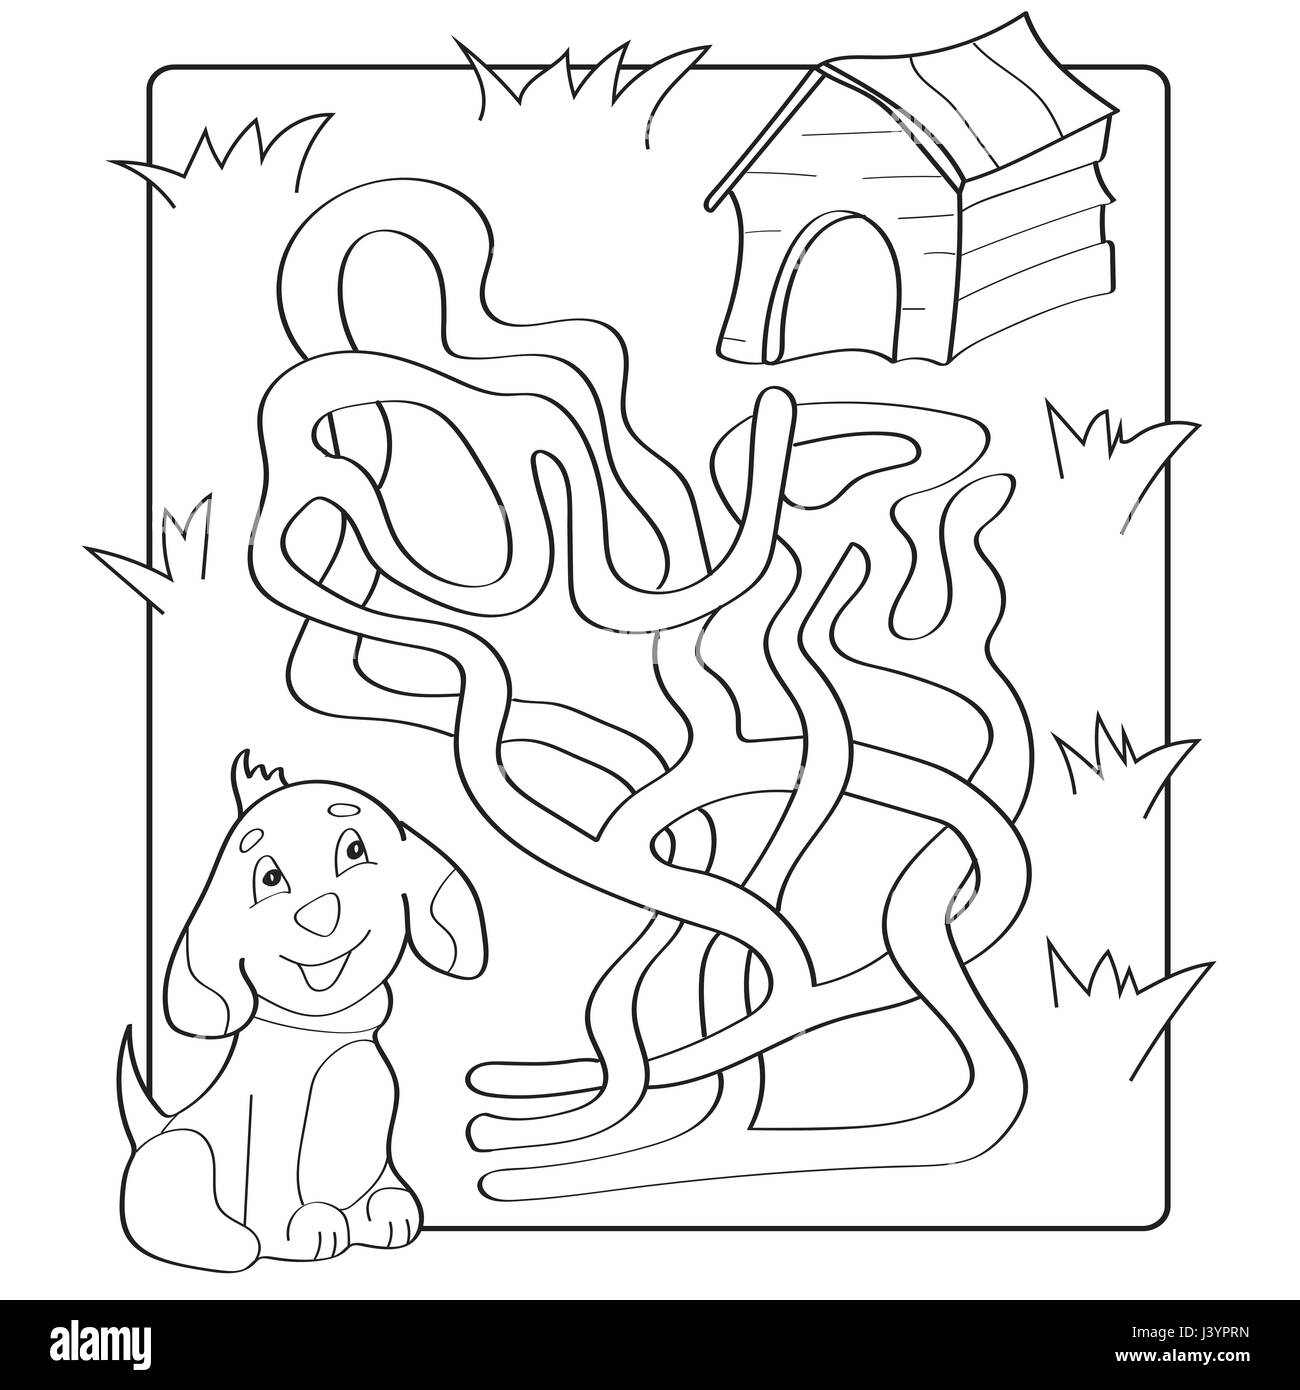 Help Puppy Find Path To His House Labyrinth Maze Game For Kids Stock Vector Art Amp Illustration